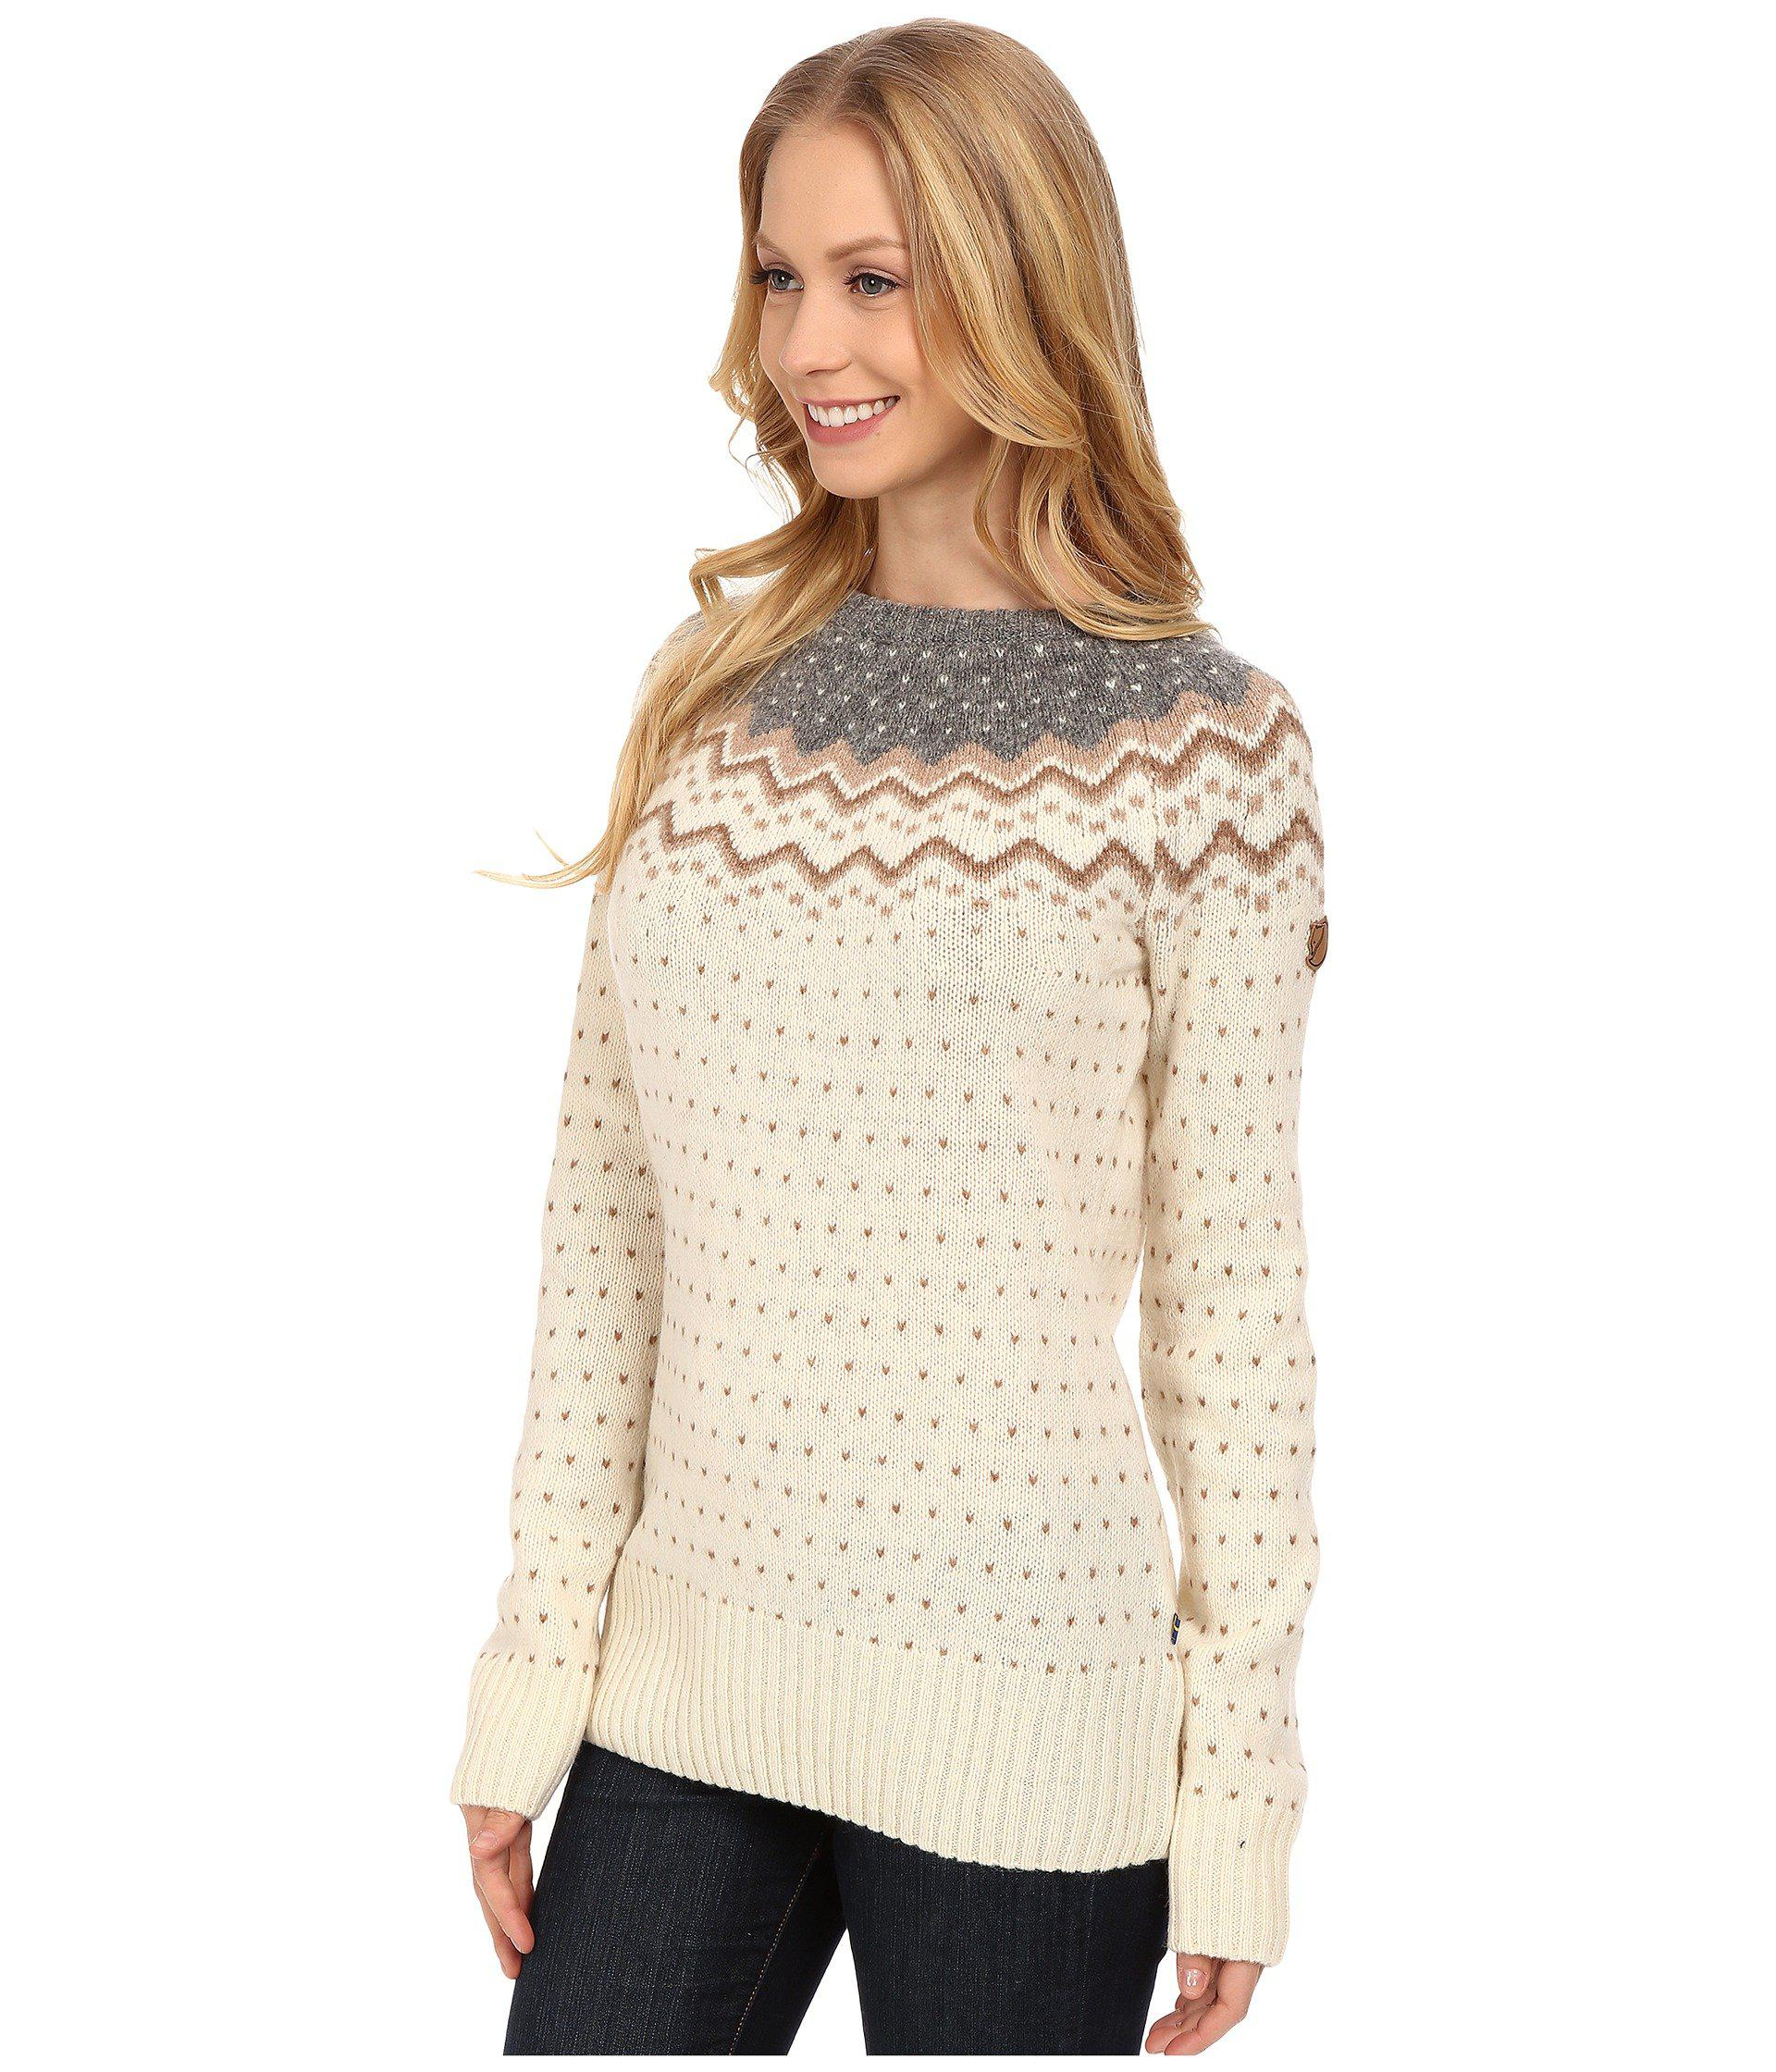 bd210f207aef Lyst - Fjallraven Ovik Knit Sweater (sand) Women s Sweater in Brown